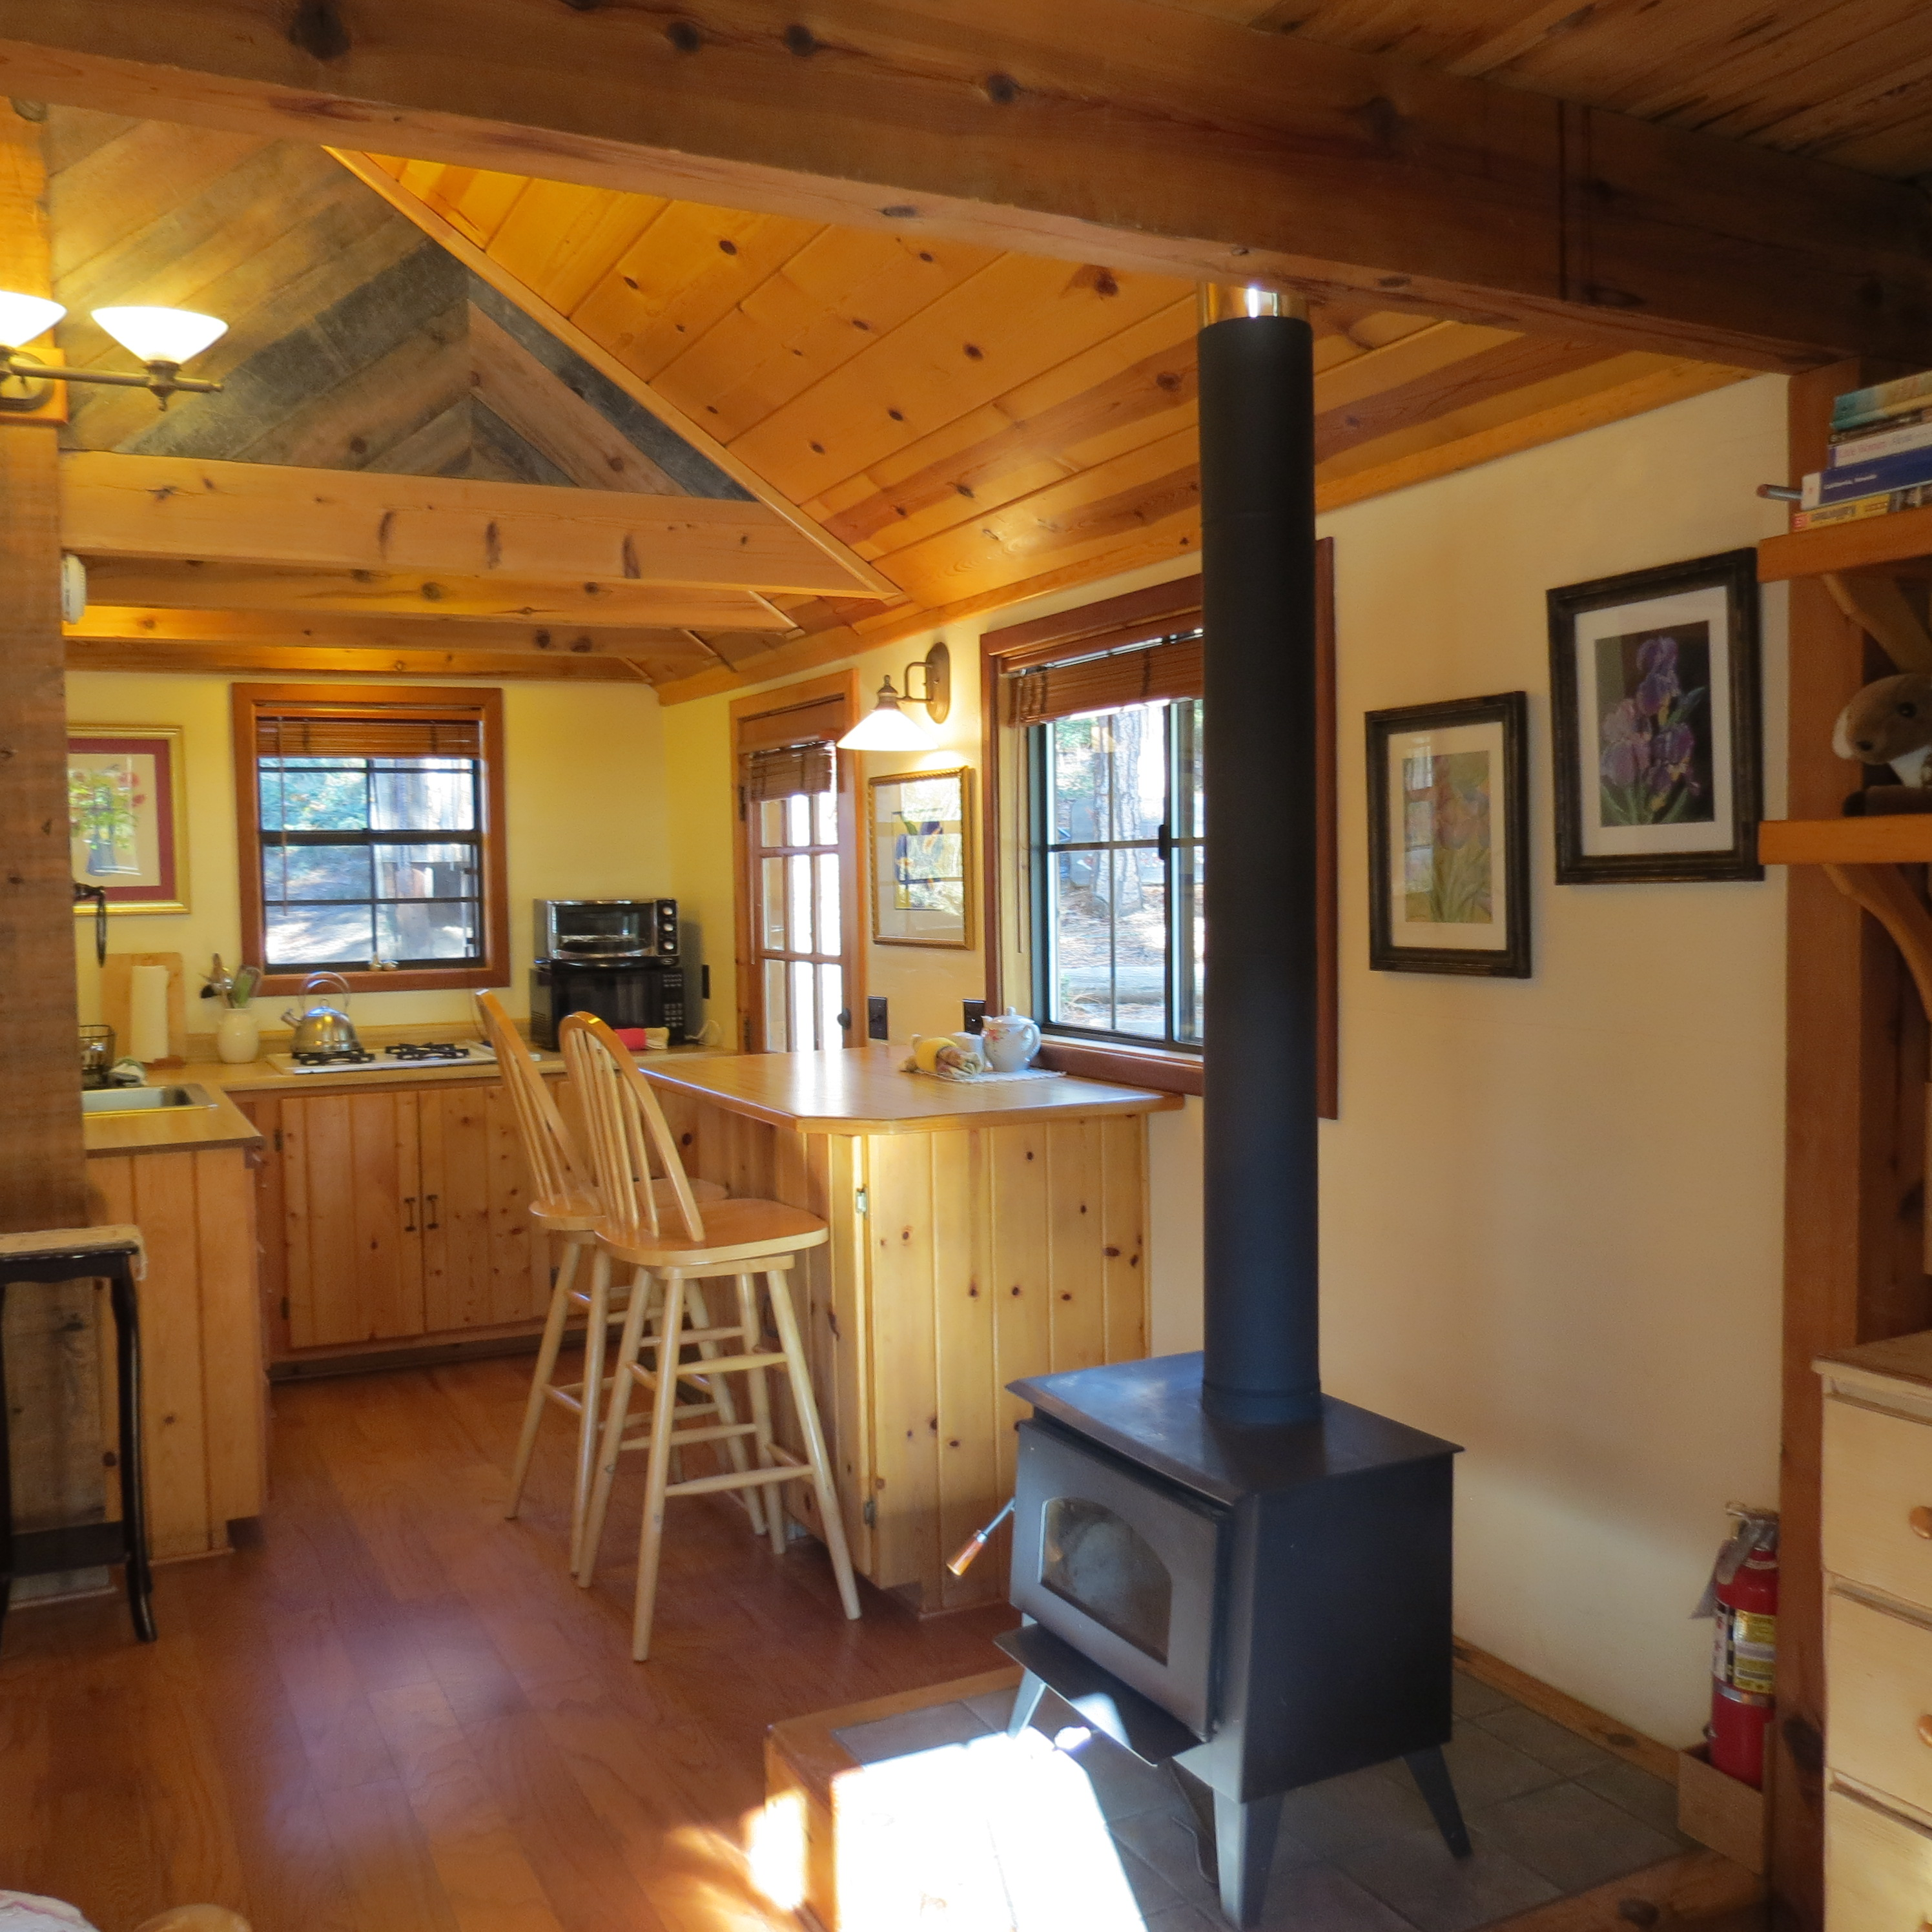 Wood Burning Stove & Kitchen